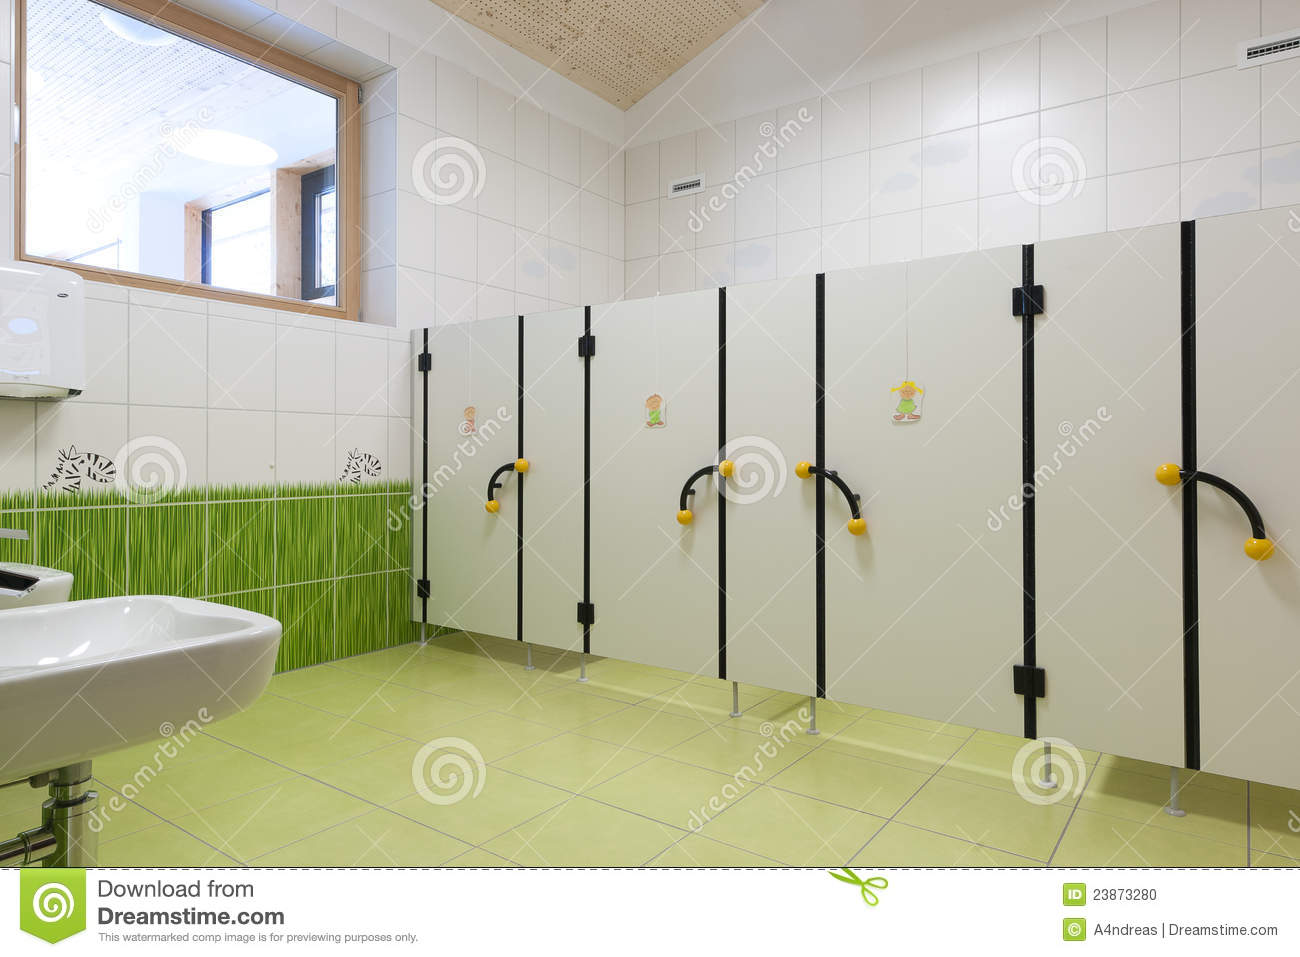 child toilets in kindergarten with nice green gras stock photo image 23873280. Black Bedroom Furniture Sets. Home Design Ideas